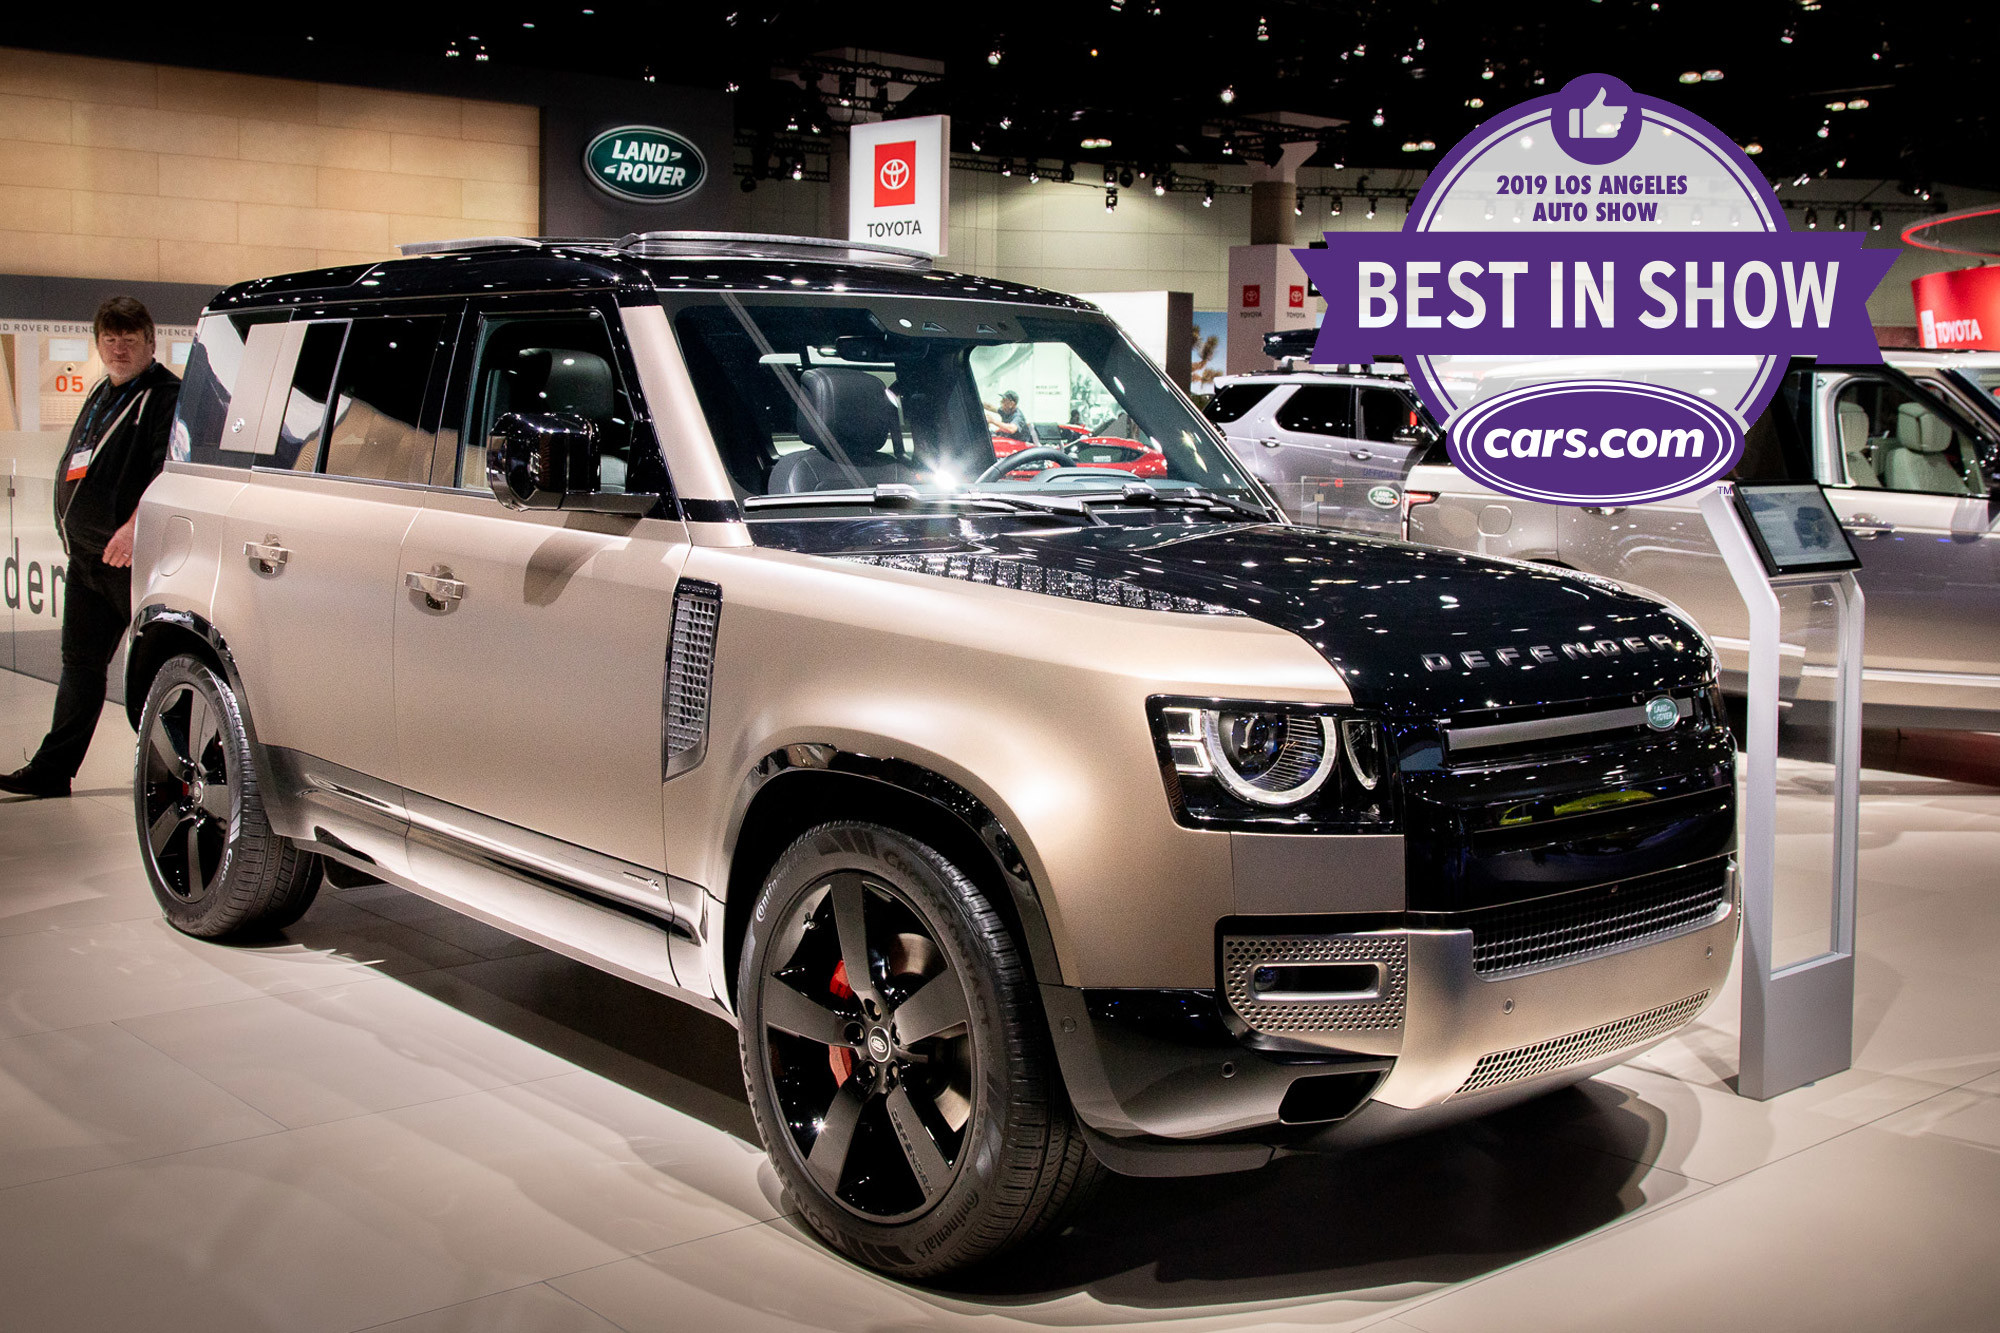 land-rover-defender-2020-CL-01-best-in-show-la-auto-show-2019.jpg